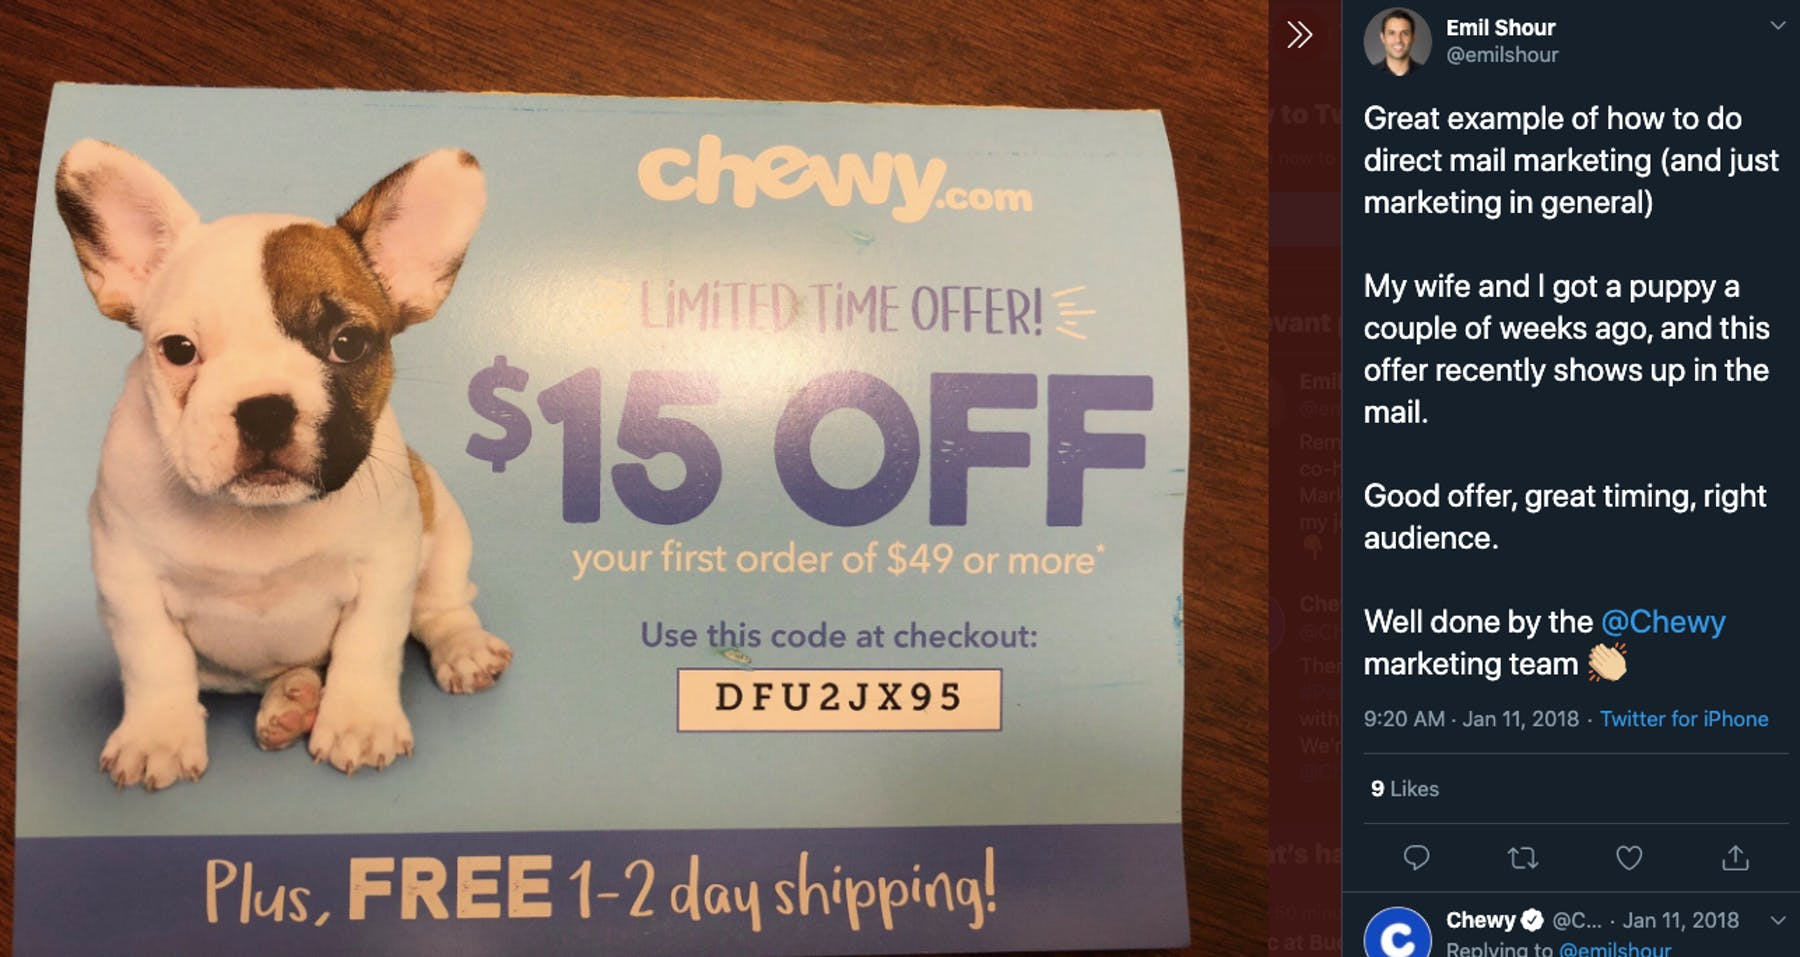 Tweet about chewy marketing